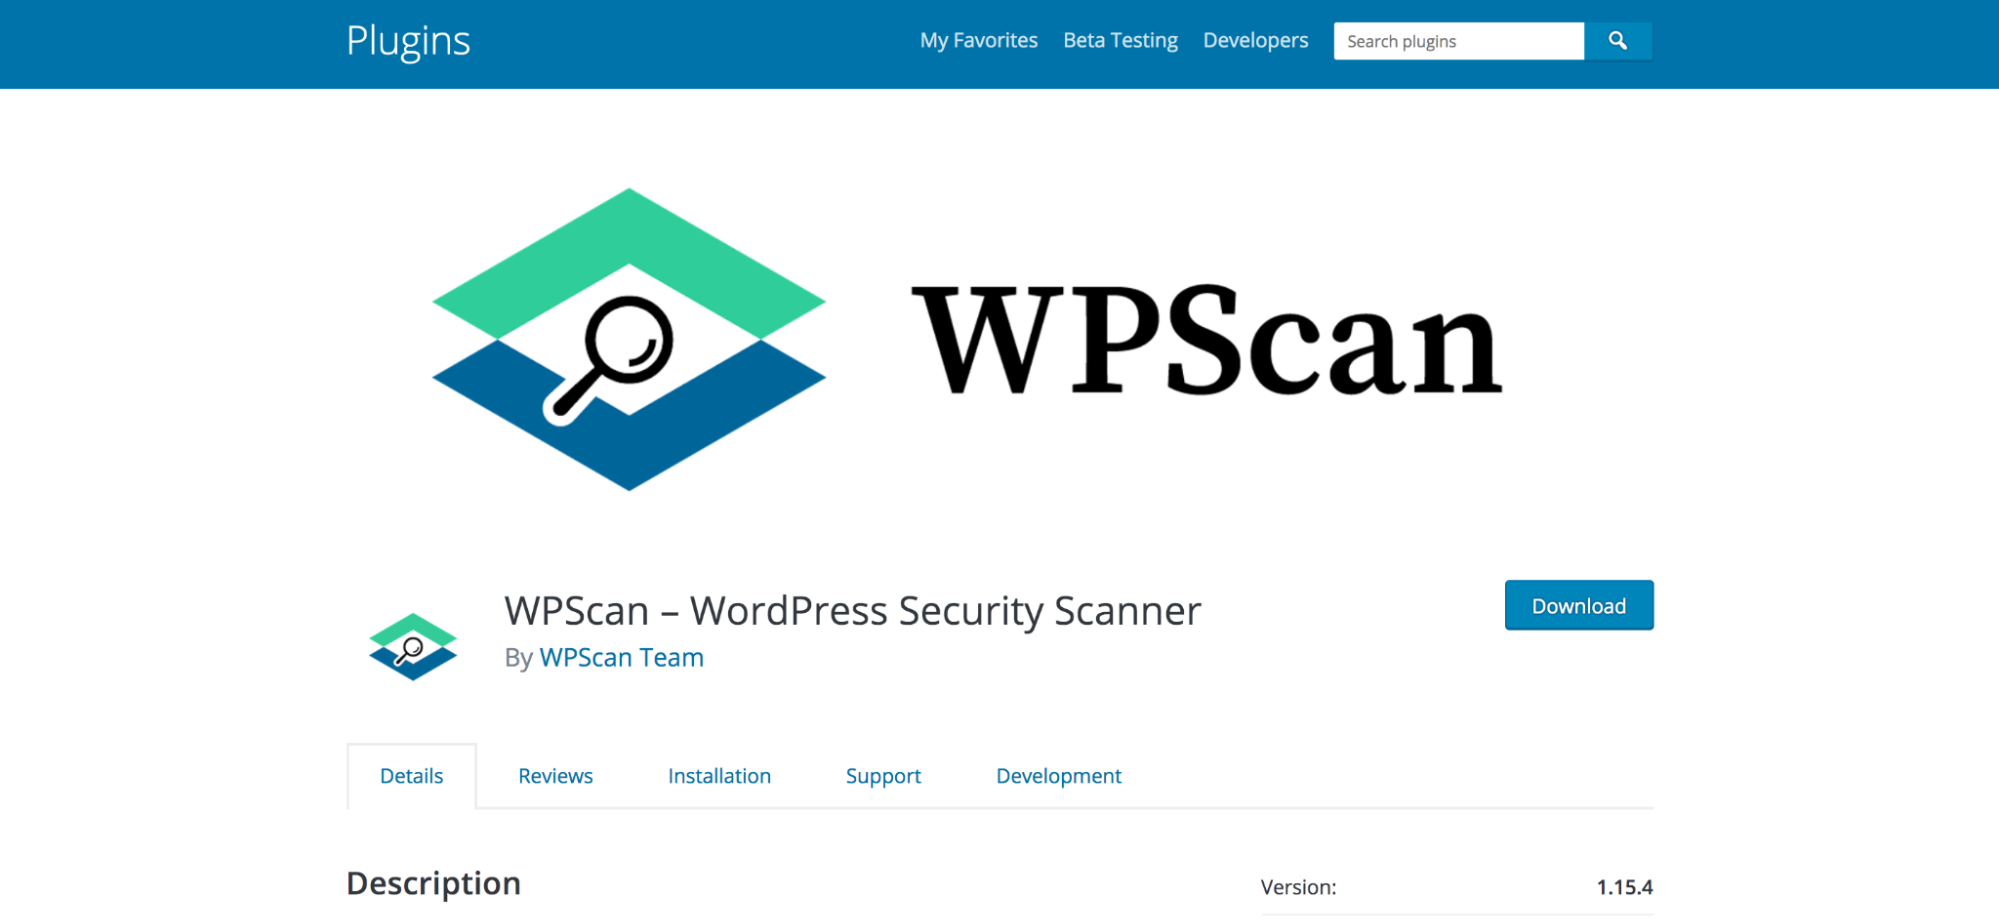 WPScan page in the WordPress repository